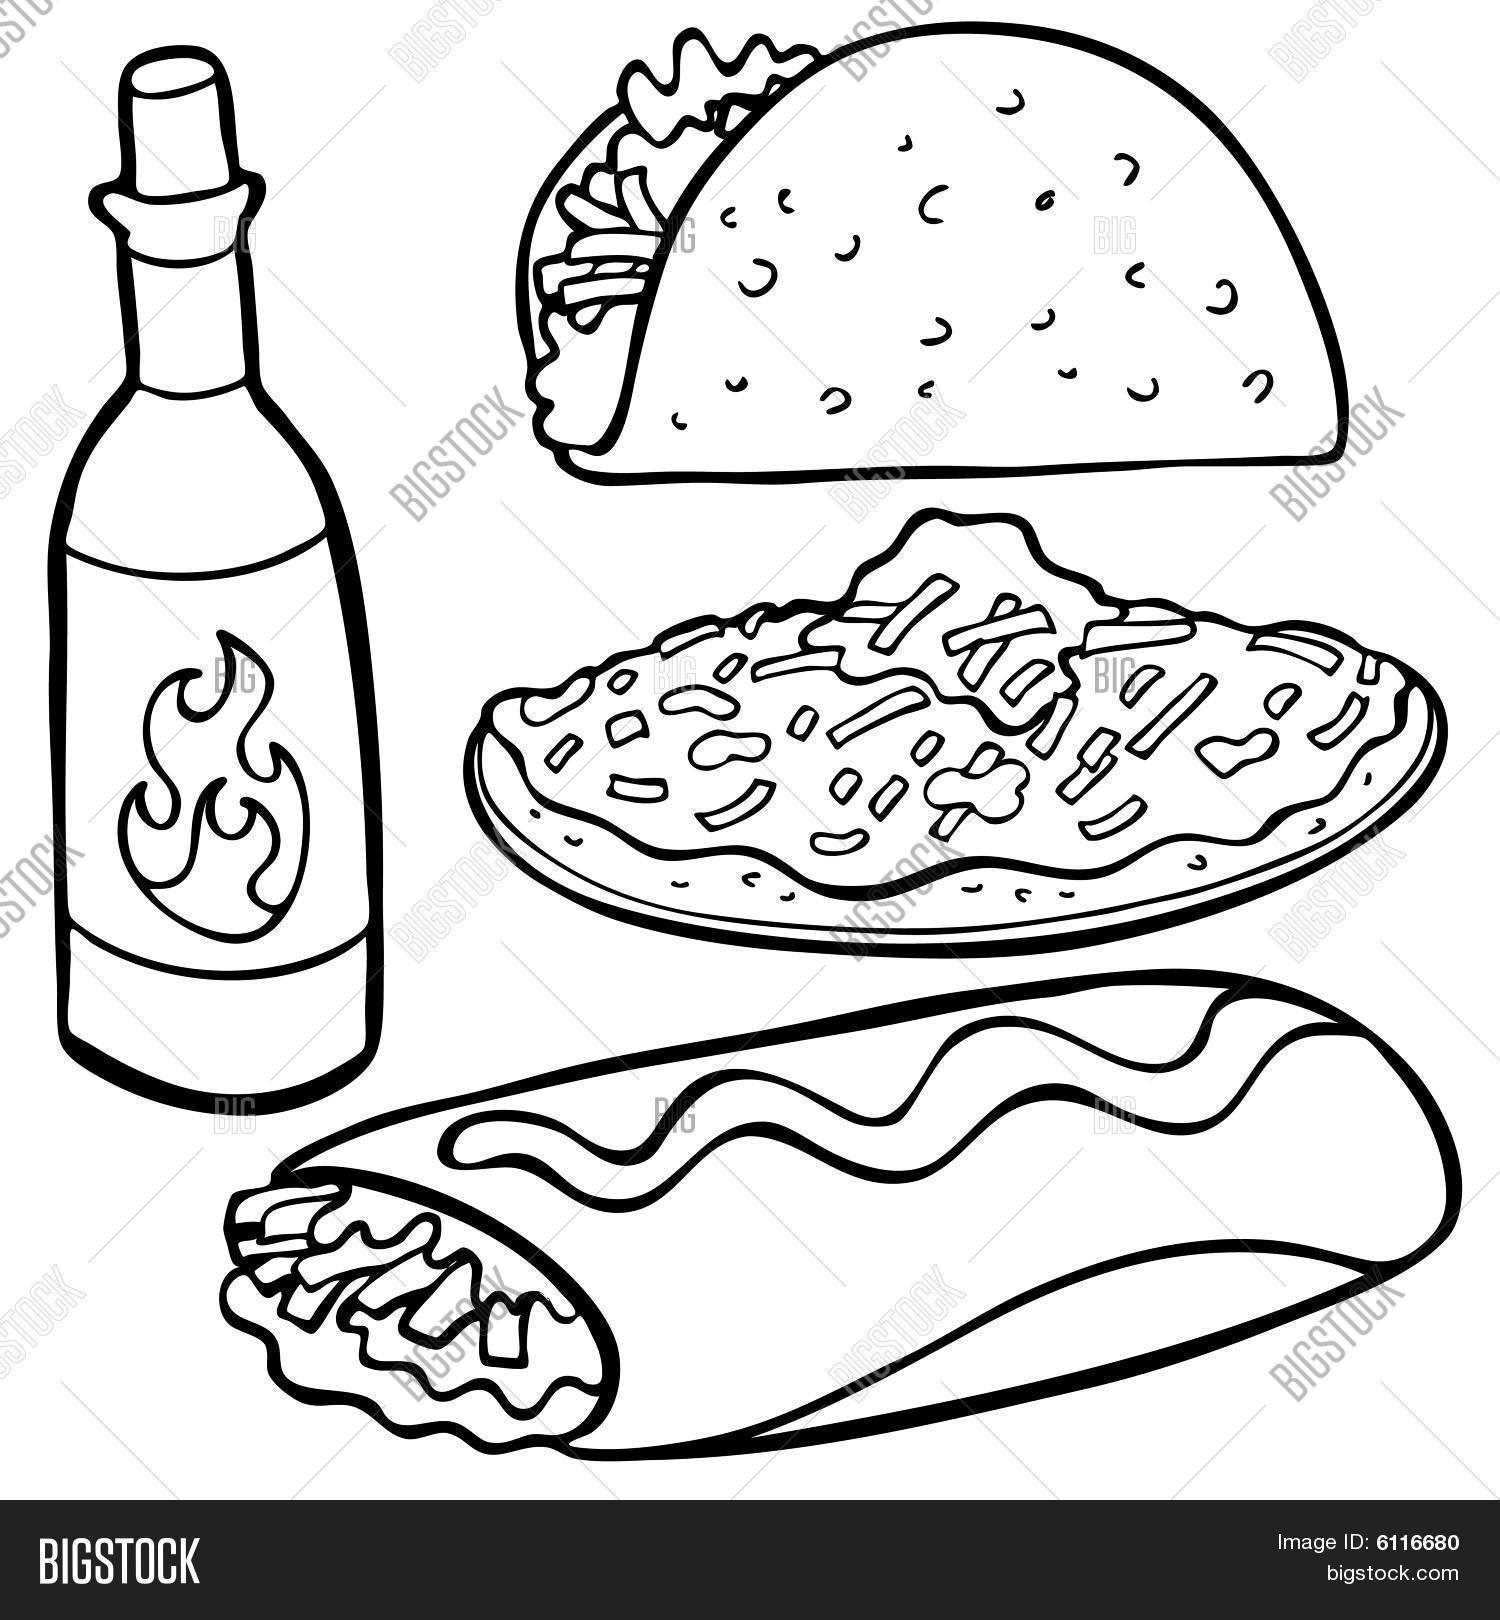 1500x1620 Mexican Food Items Line Art Vector Amp Photo Bigstock